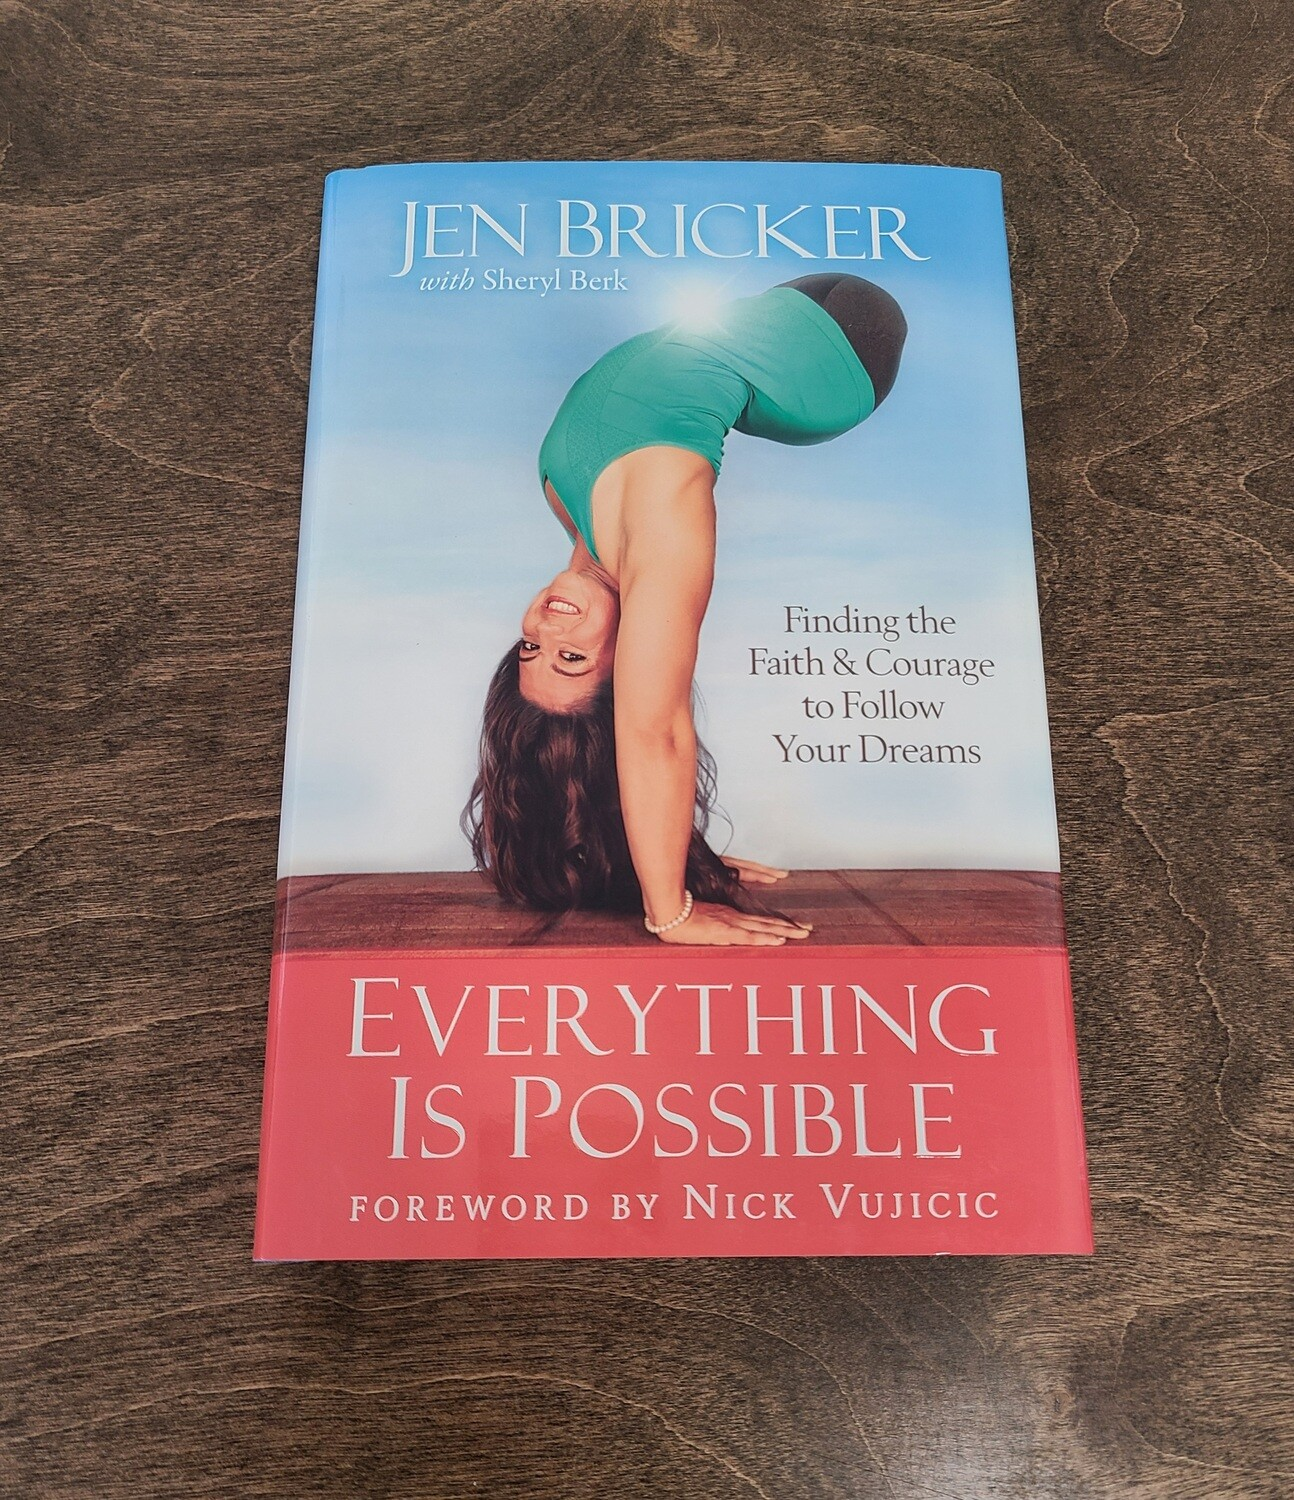 Everything is Possible by Jen Bricker with Sheryl Berk